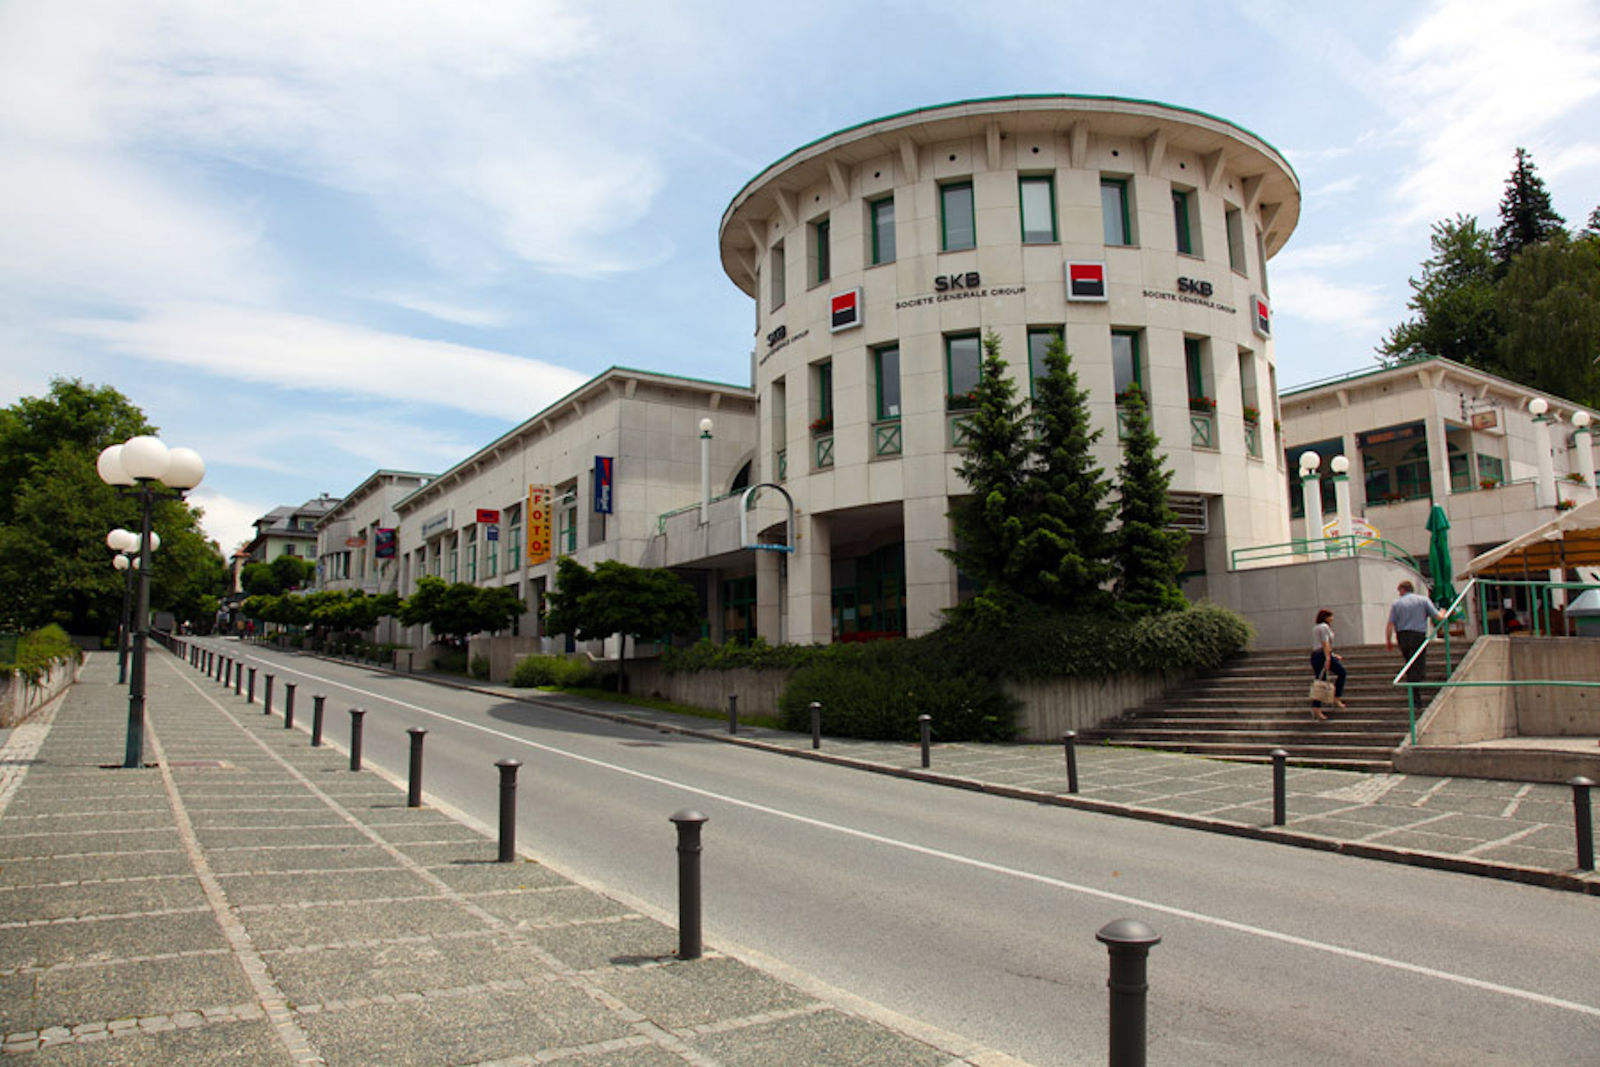 Bled Shopping Centre